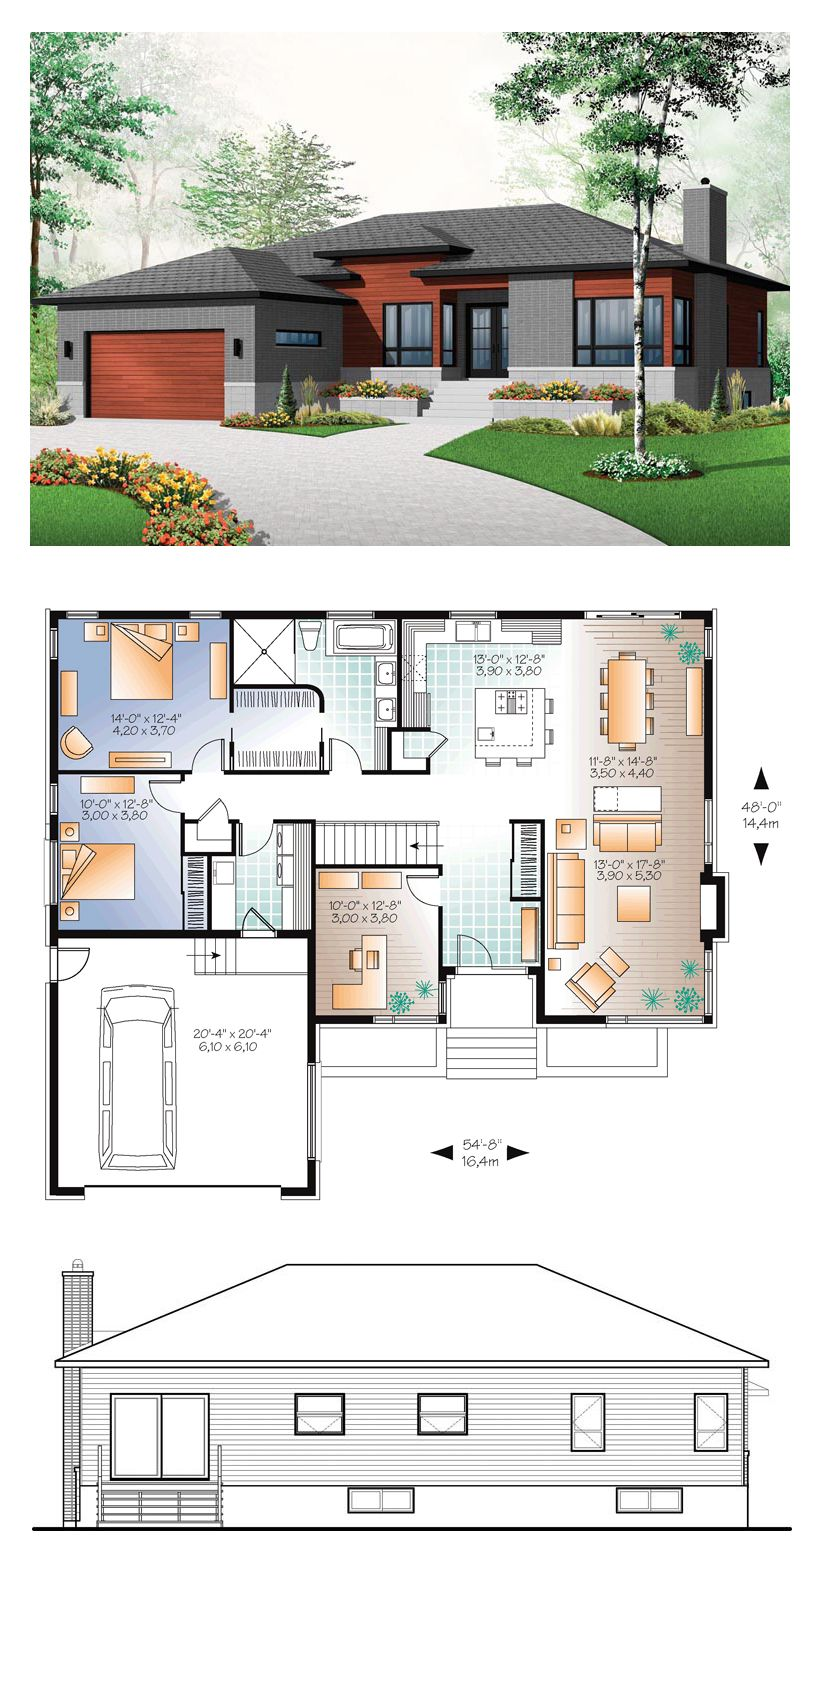 Modern house plan 76355 total living area 1676 sq ft 3 bedrooms and 1 bathroom houseplan modernhome